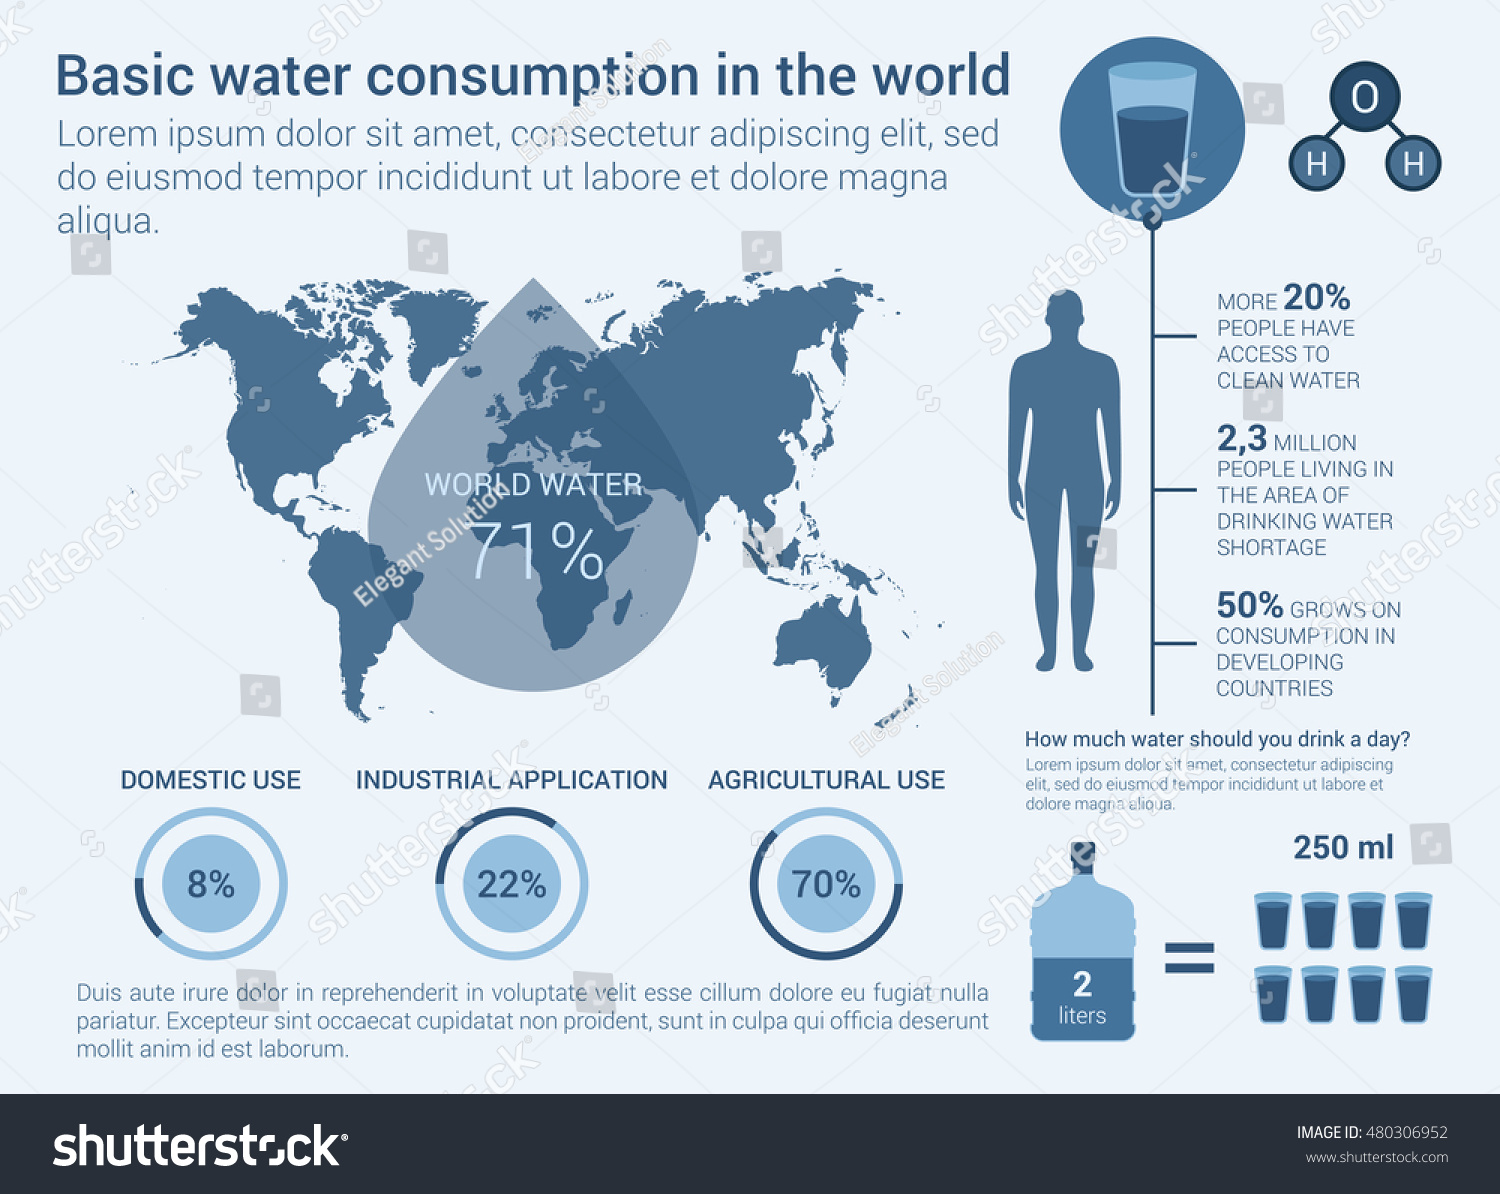 World water daily consumption infographic man vector de world water daily consumption infographic man vector de stock480306952 shutterstock gumiabroncs Image collections